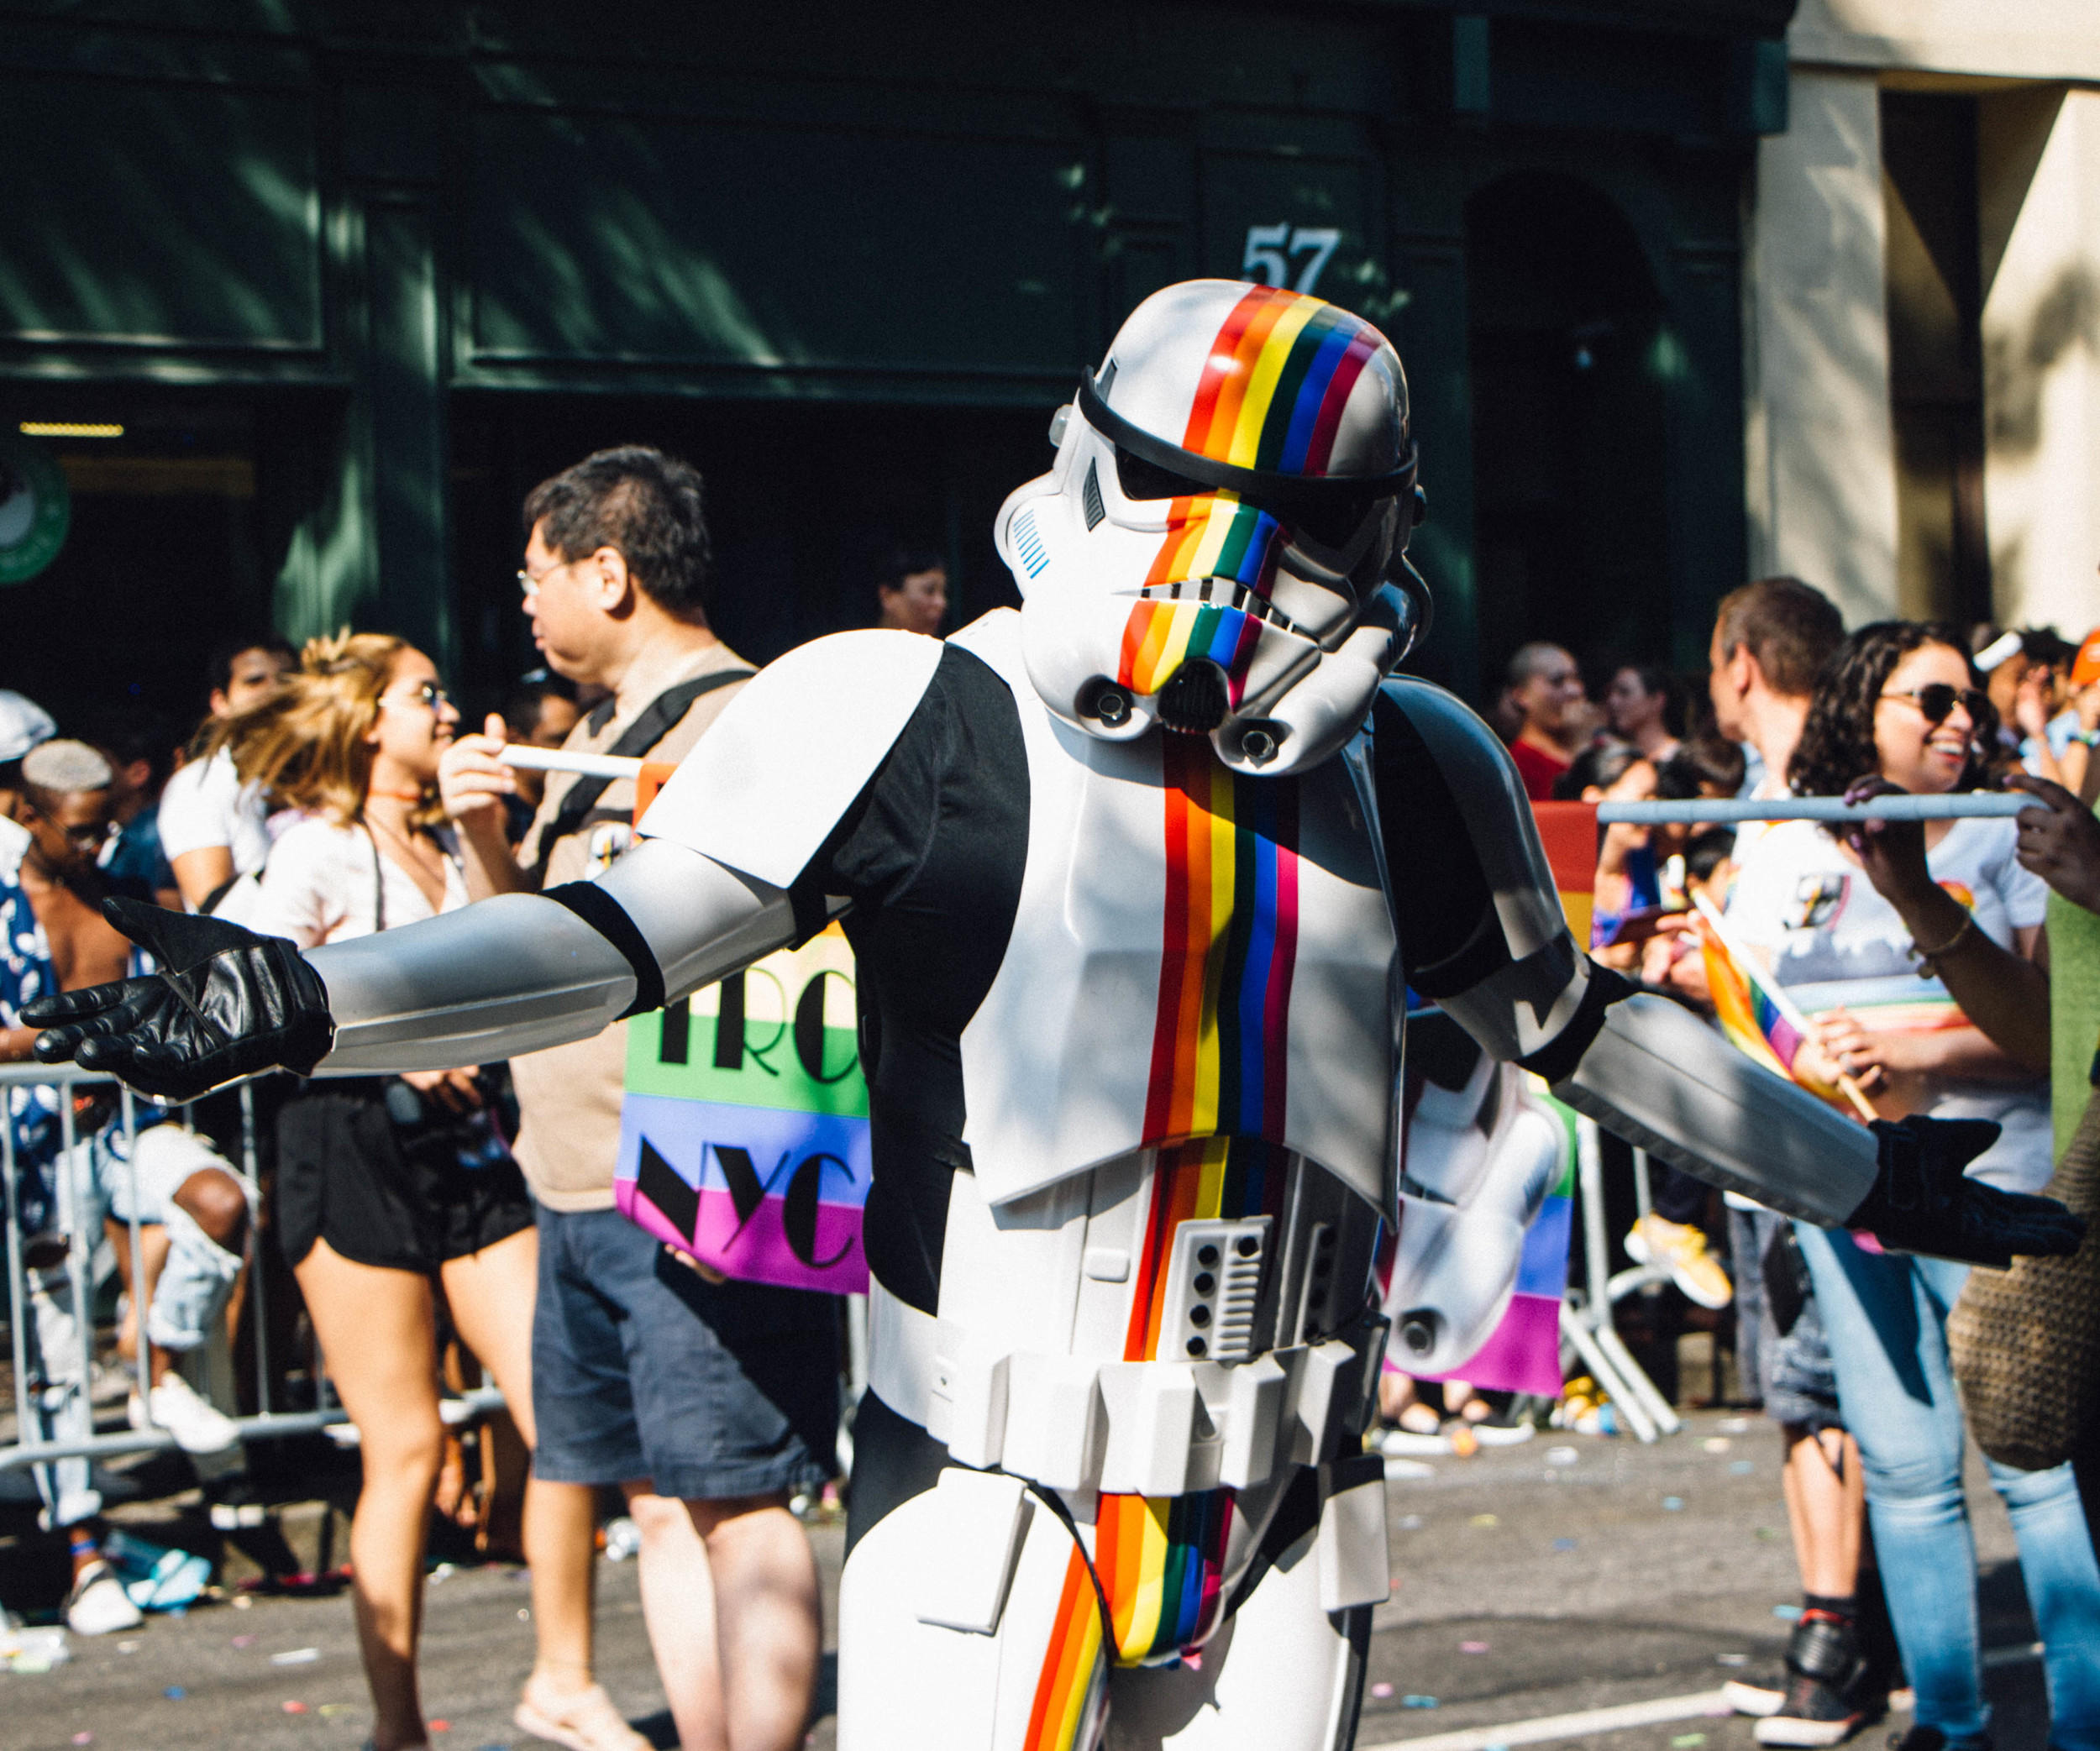 A gay pride Storm Trooper poses for cameras.